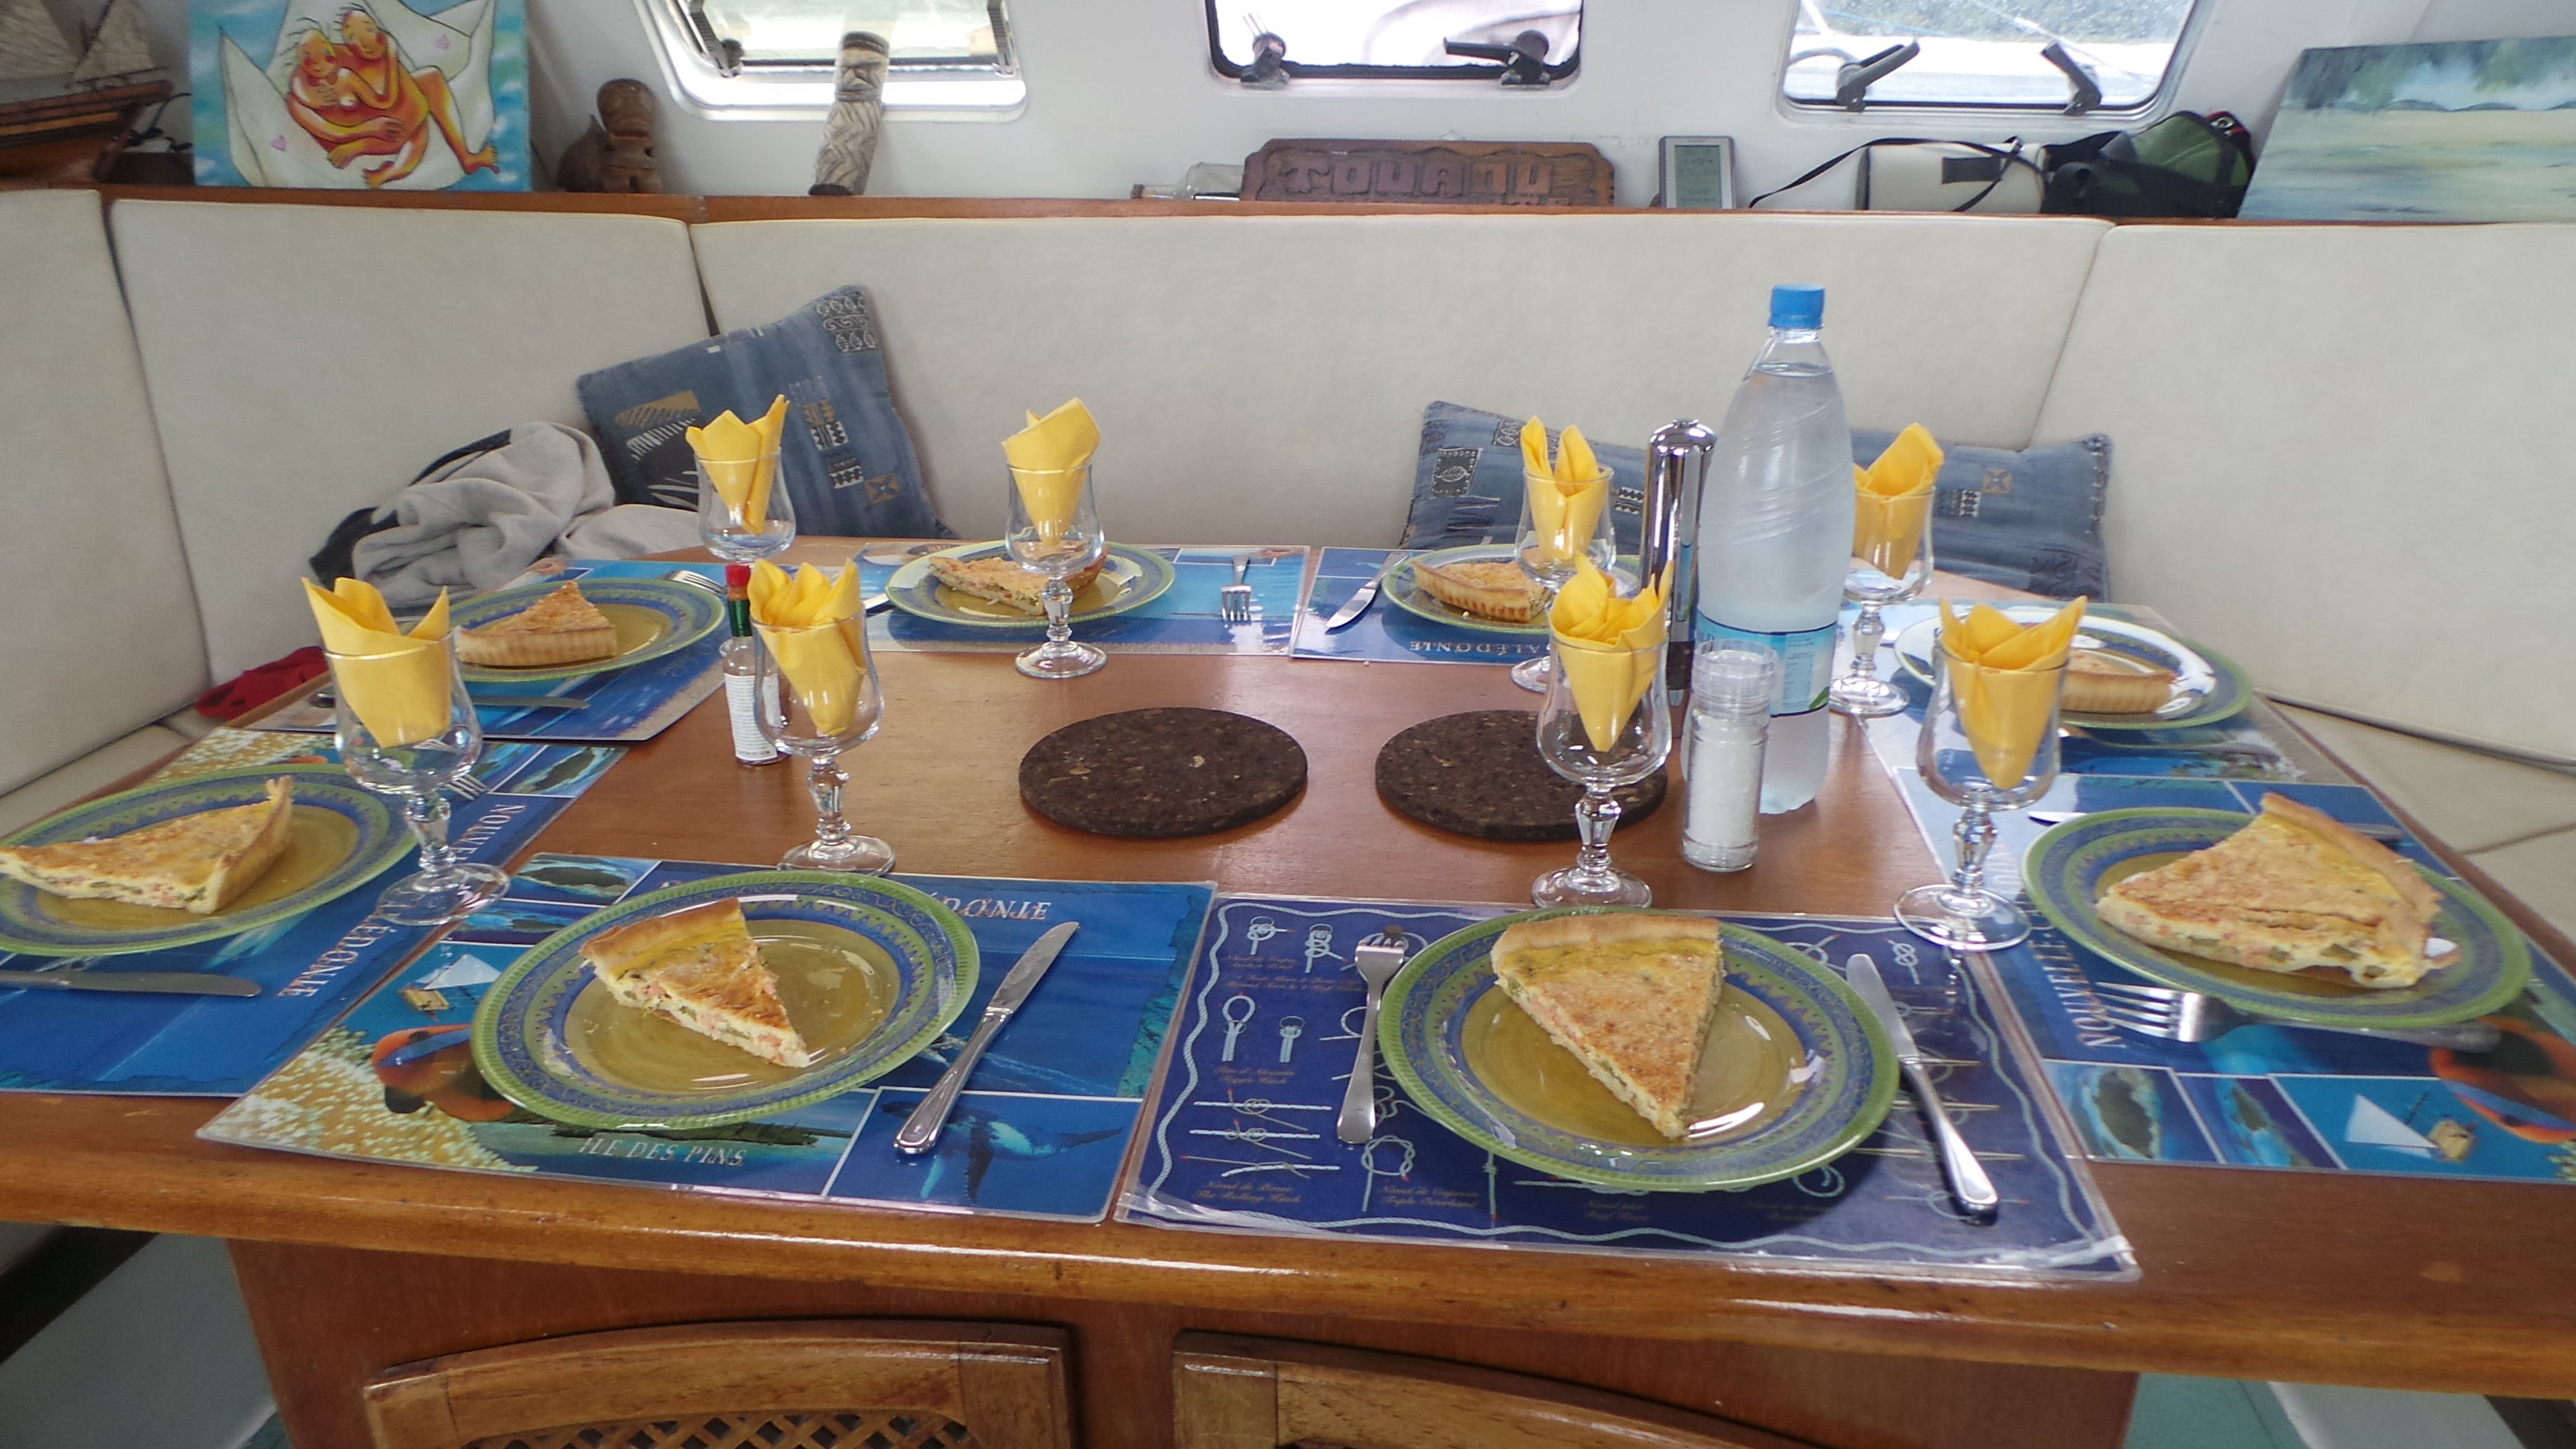 Abaca croisieres noumea new caledonia top tips before you go tripadvisor - Monter une table d hote ...